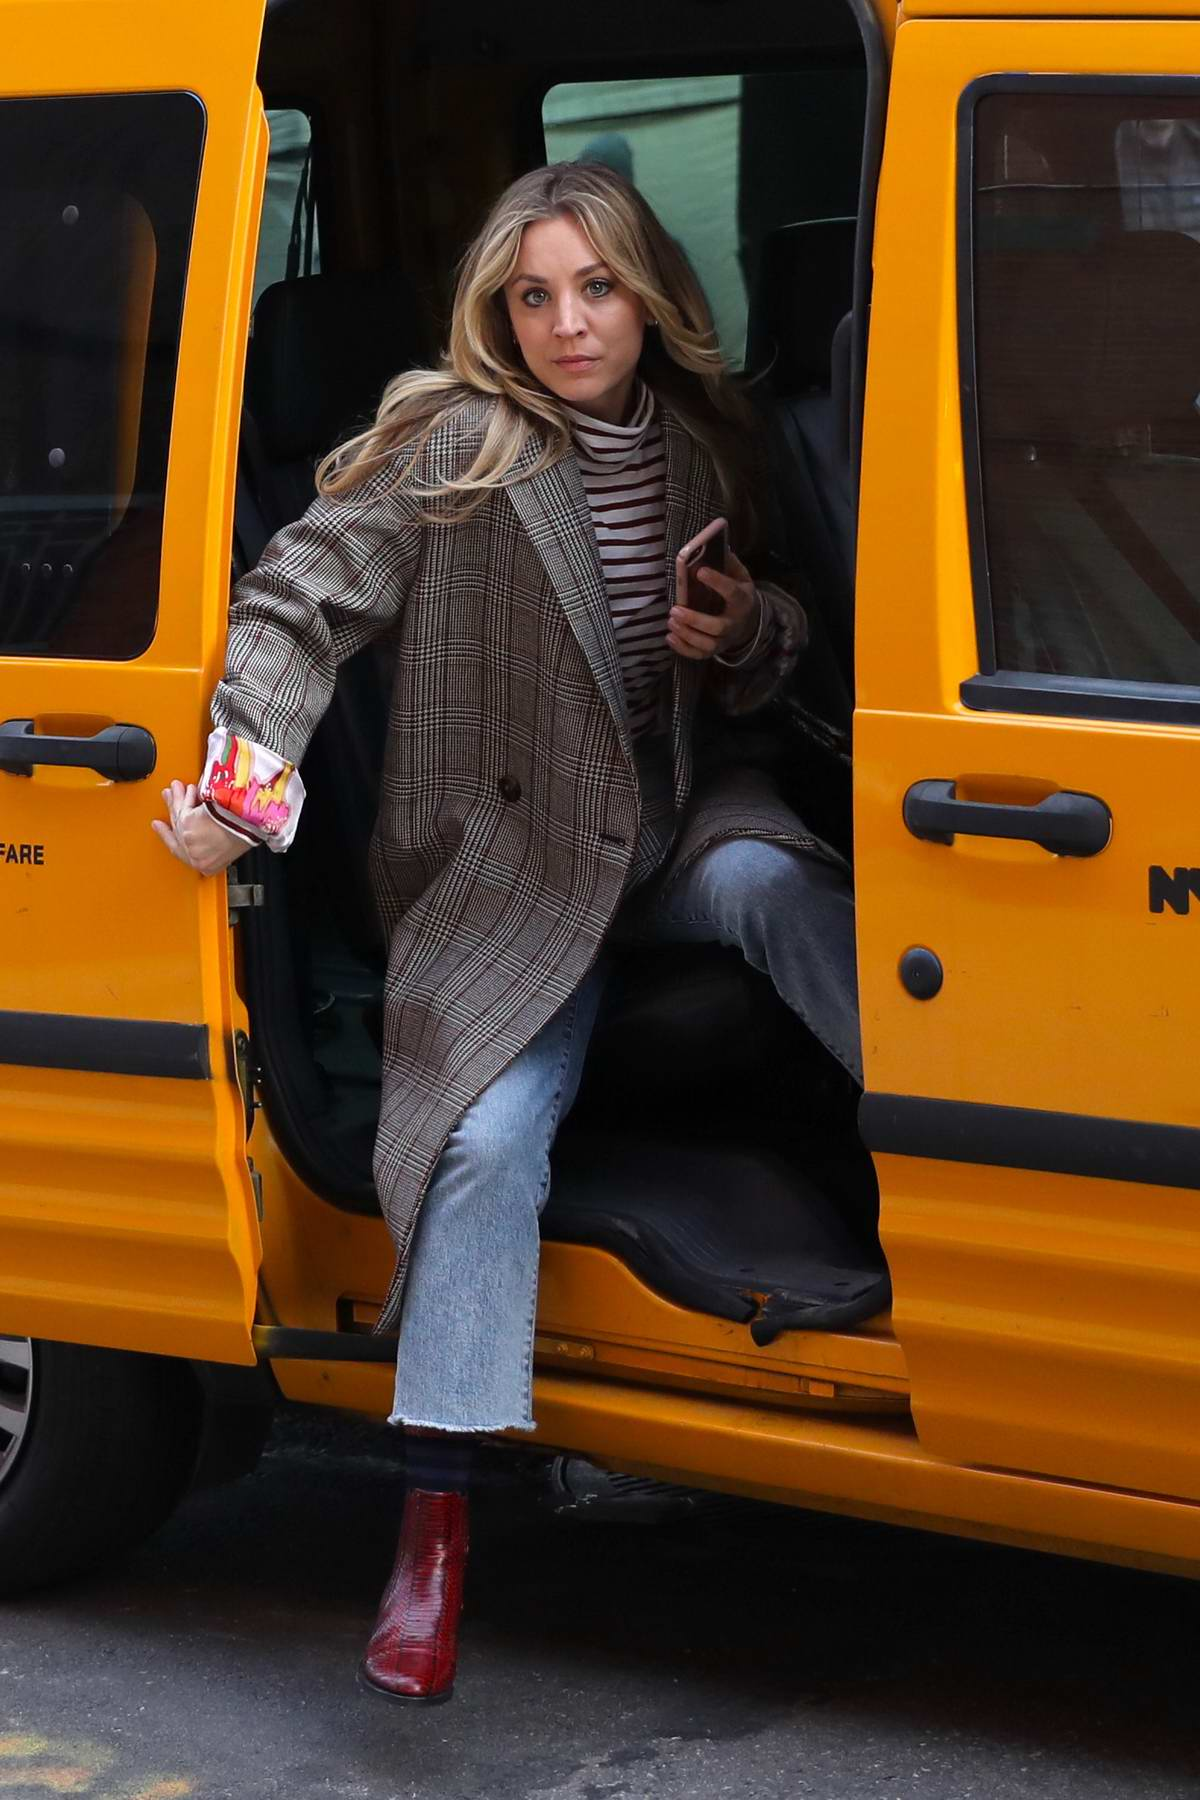 Kaley Cuoco seen getting off of a cab on the set of 'The Flight Attendant' in New York City